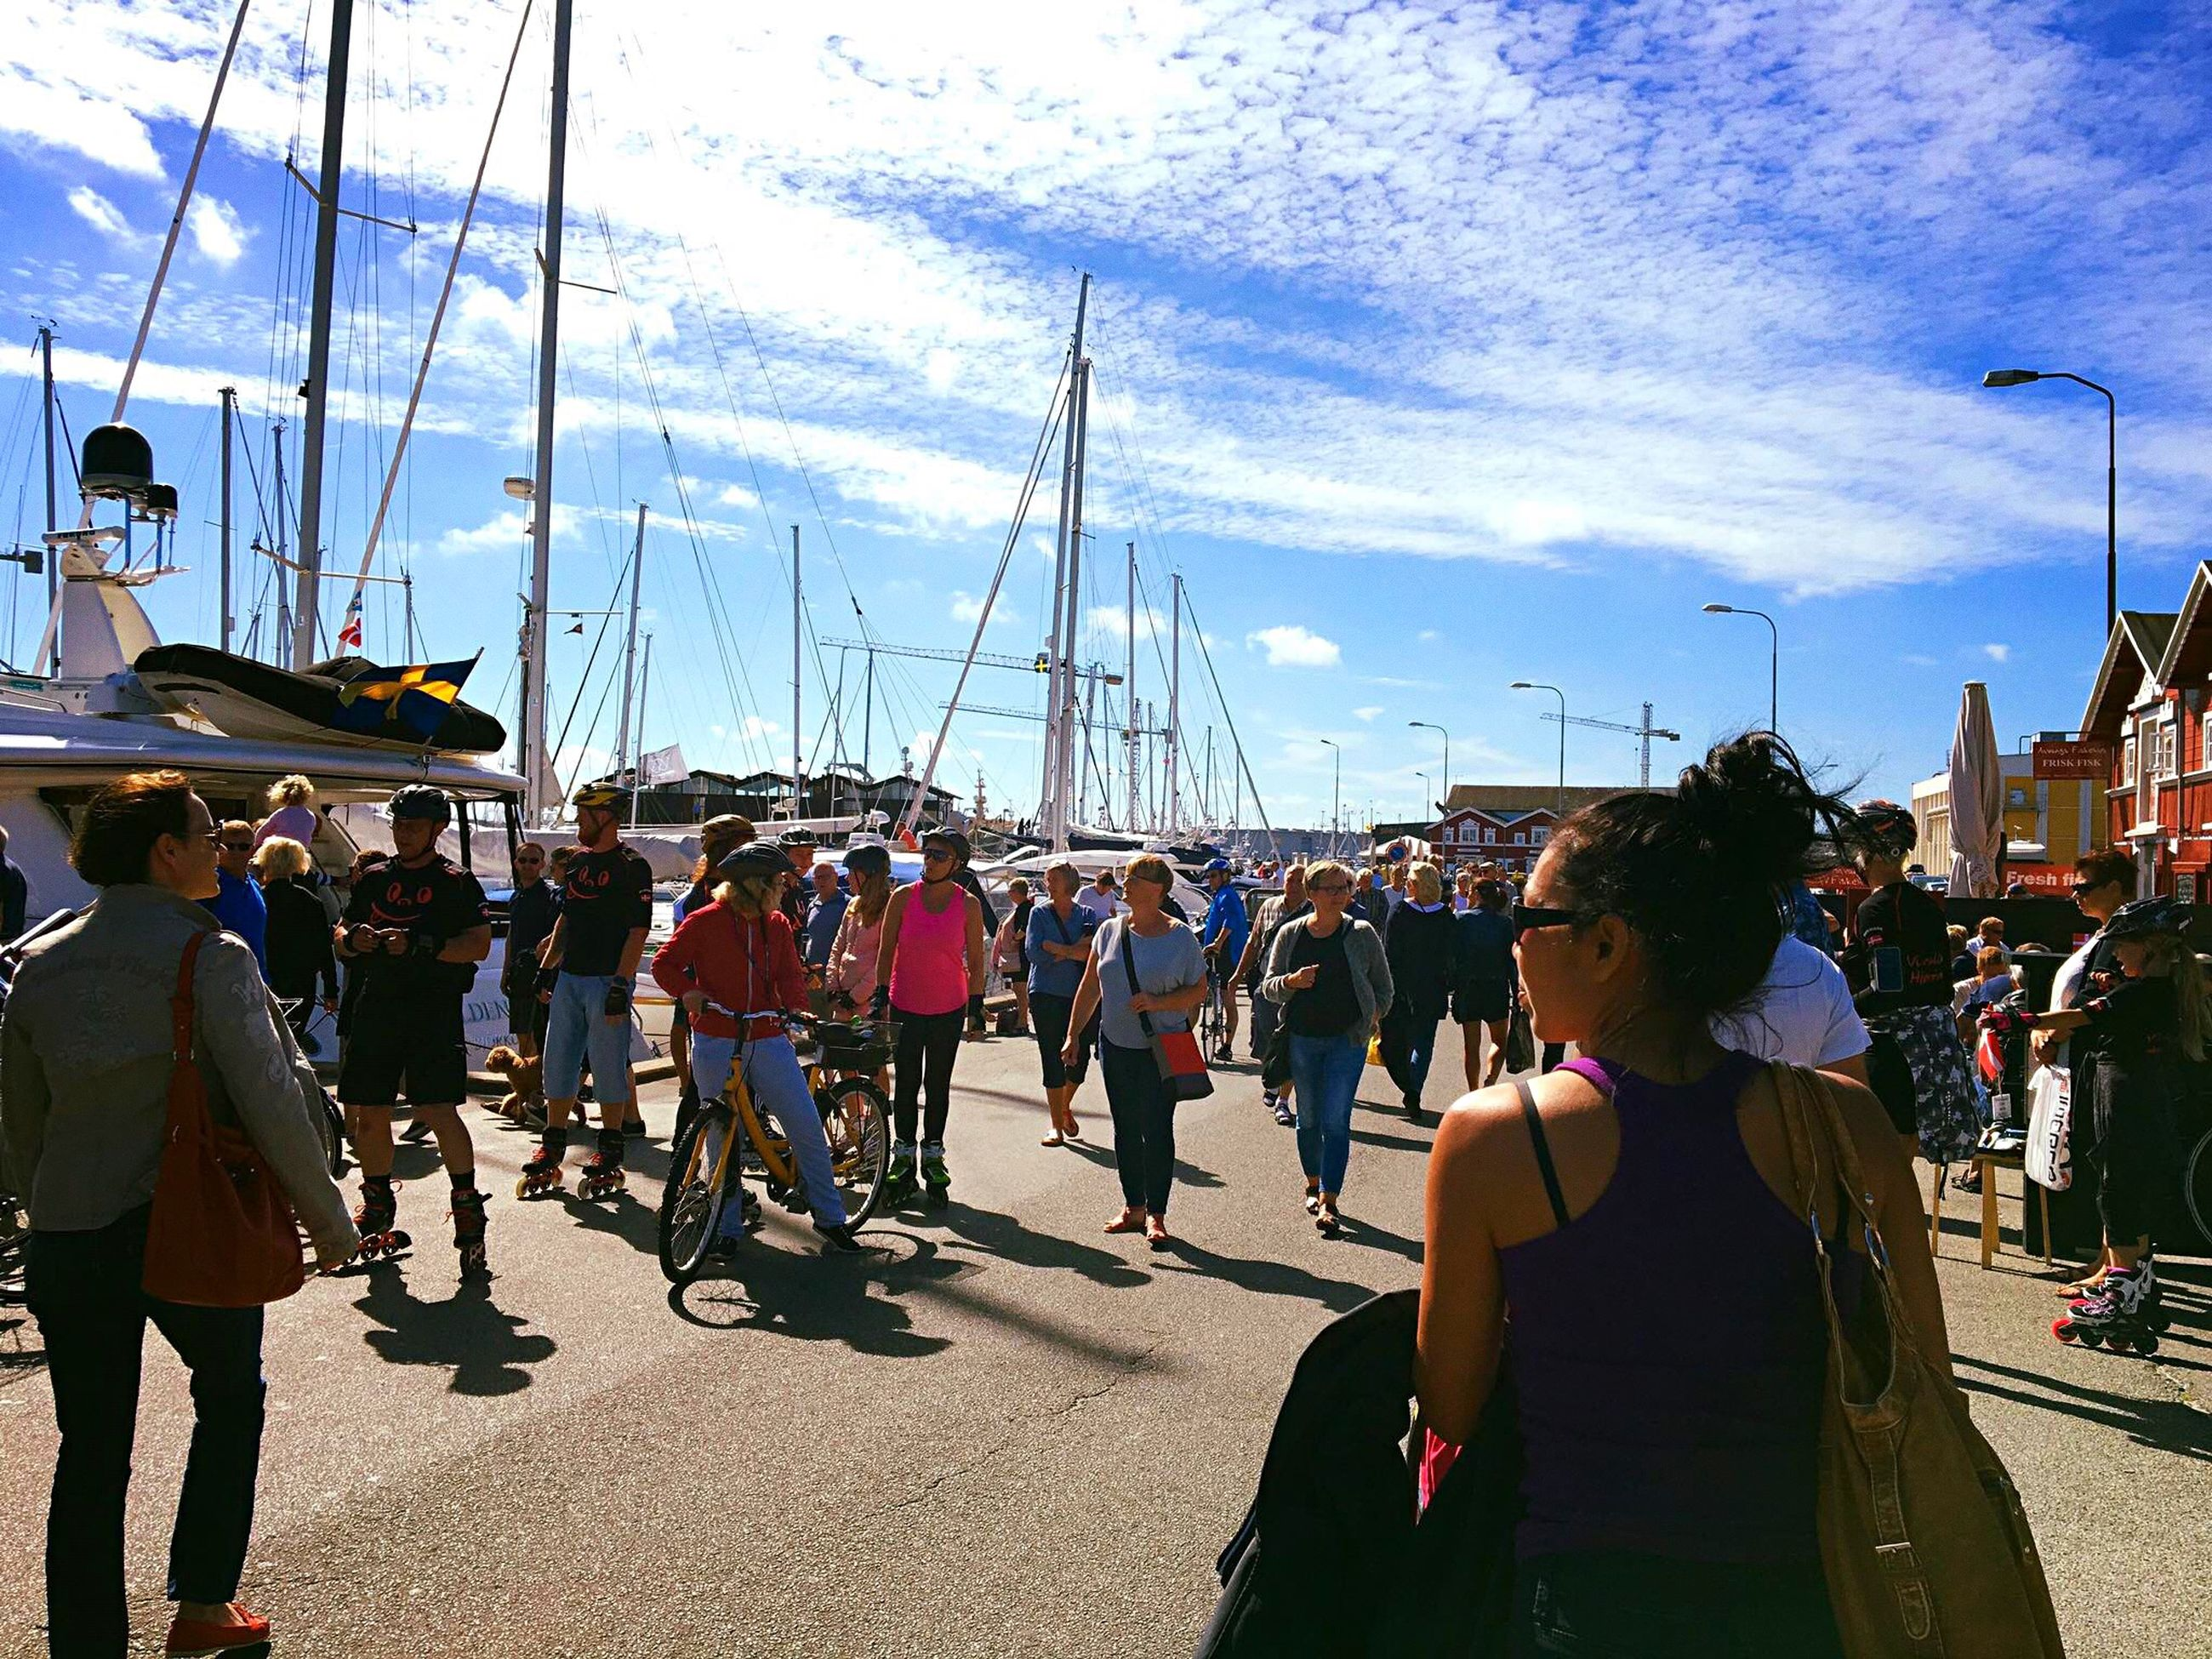 large group of people, sky, men, person, walking, standing, cloud - sky, full length, mast, day, casual clothing, cloud, city life, crowd, weekend activities